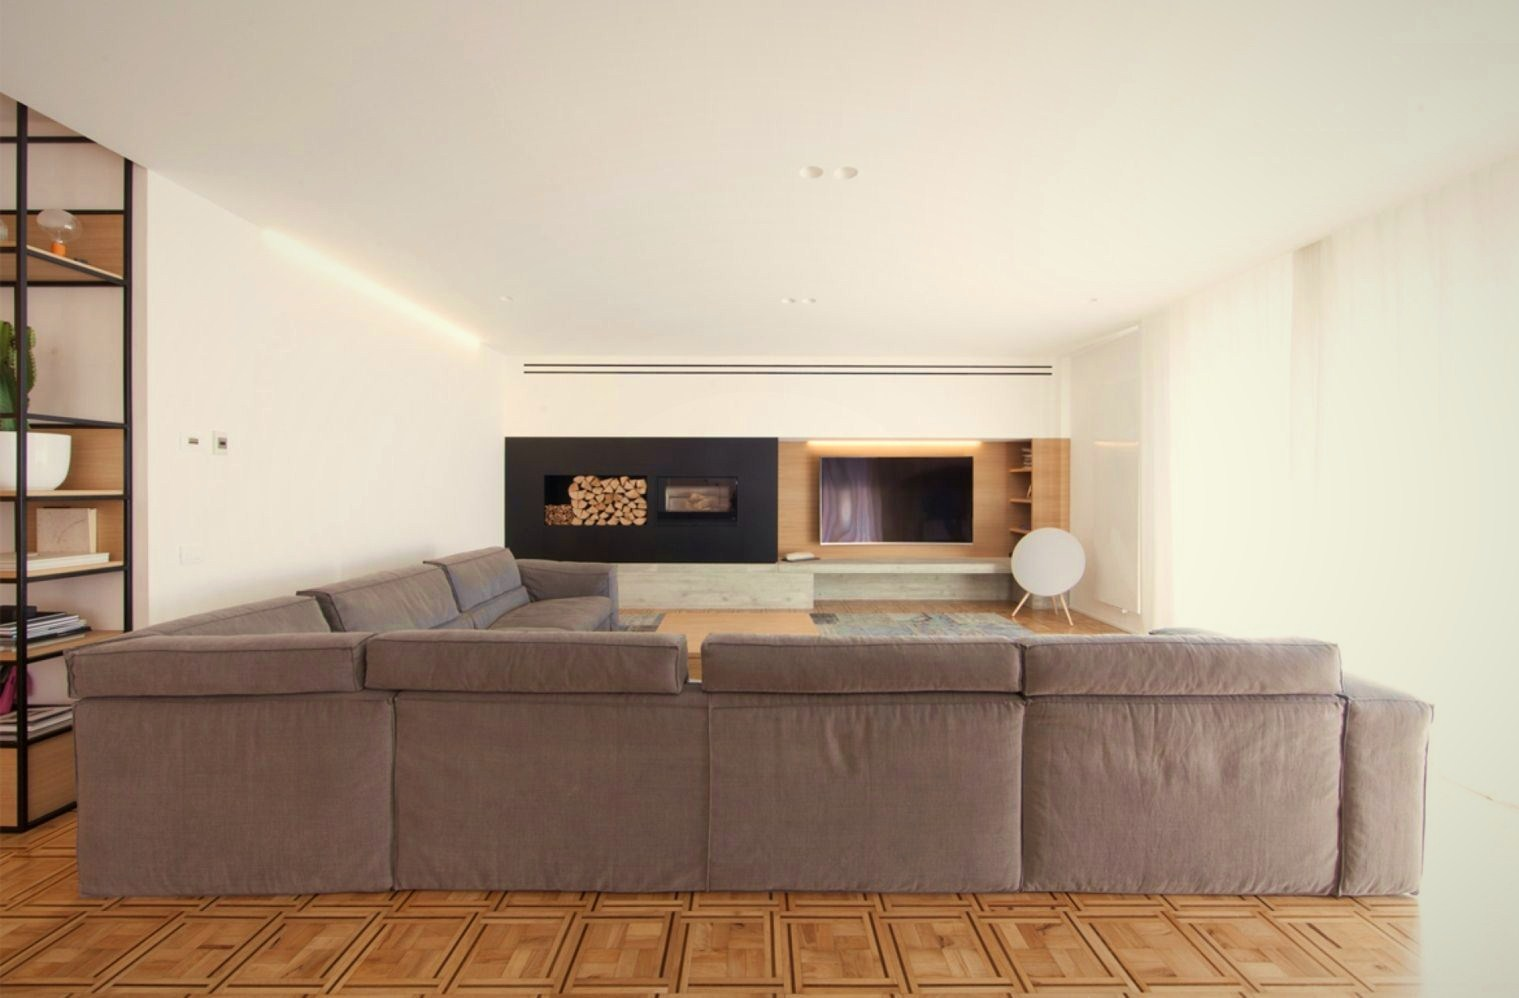 L shape sofa in greyish cover in modern living room House AB (2)